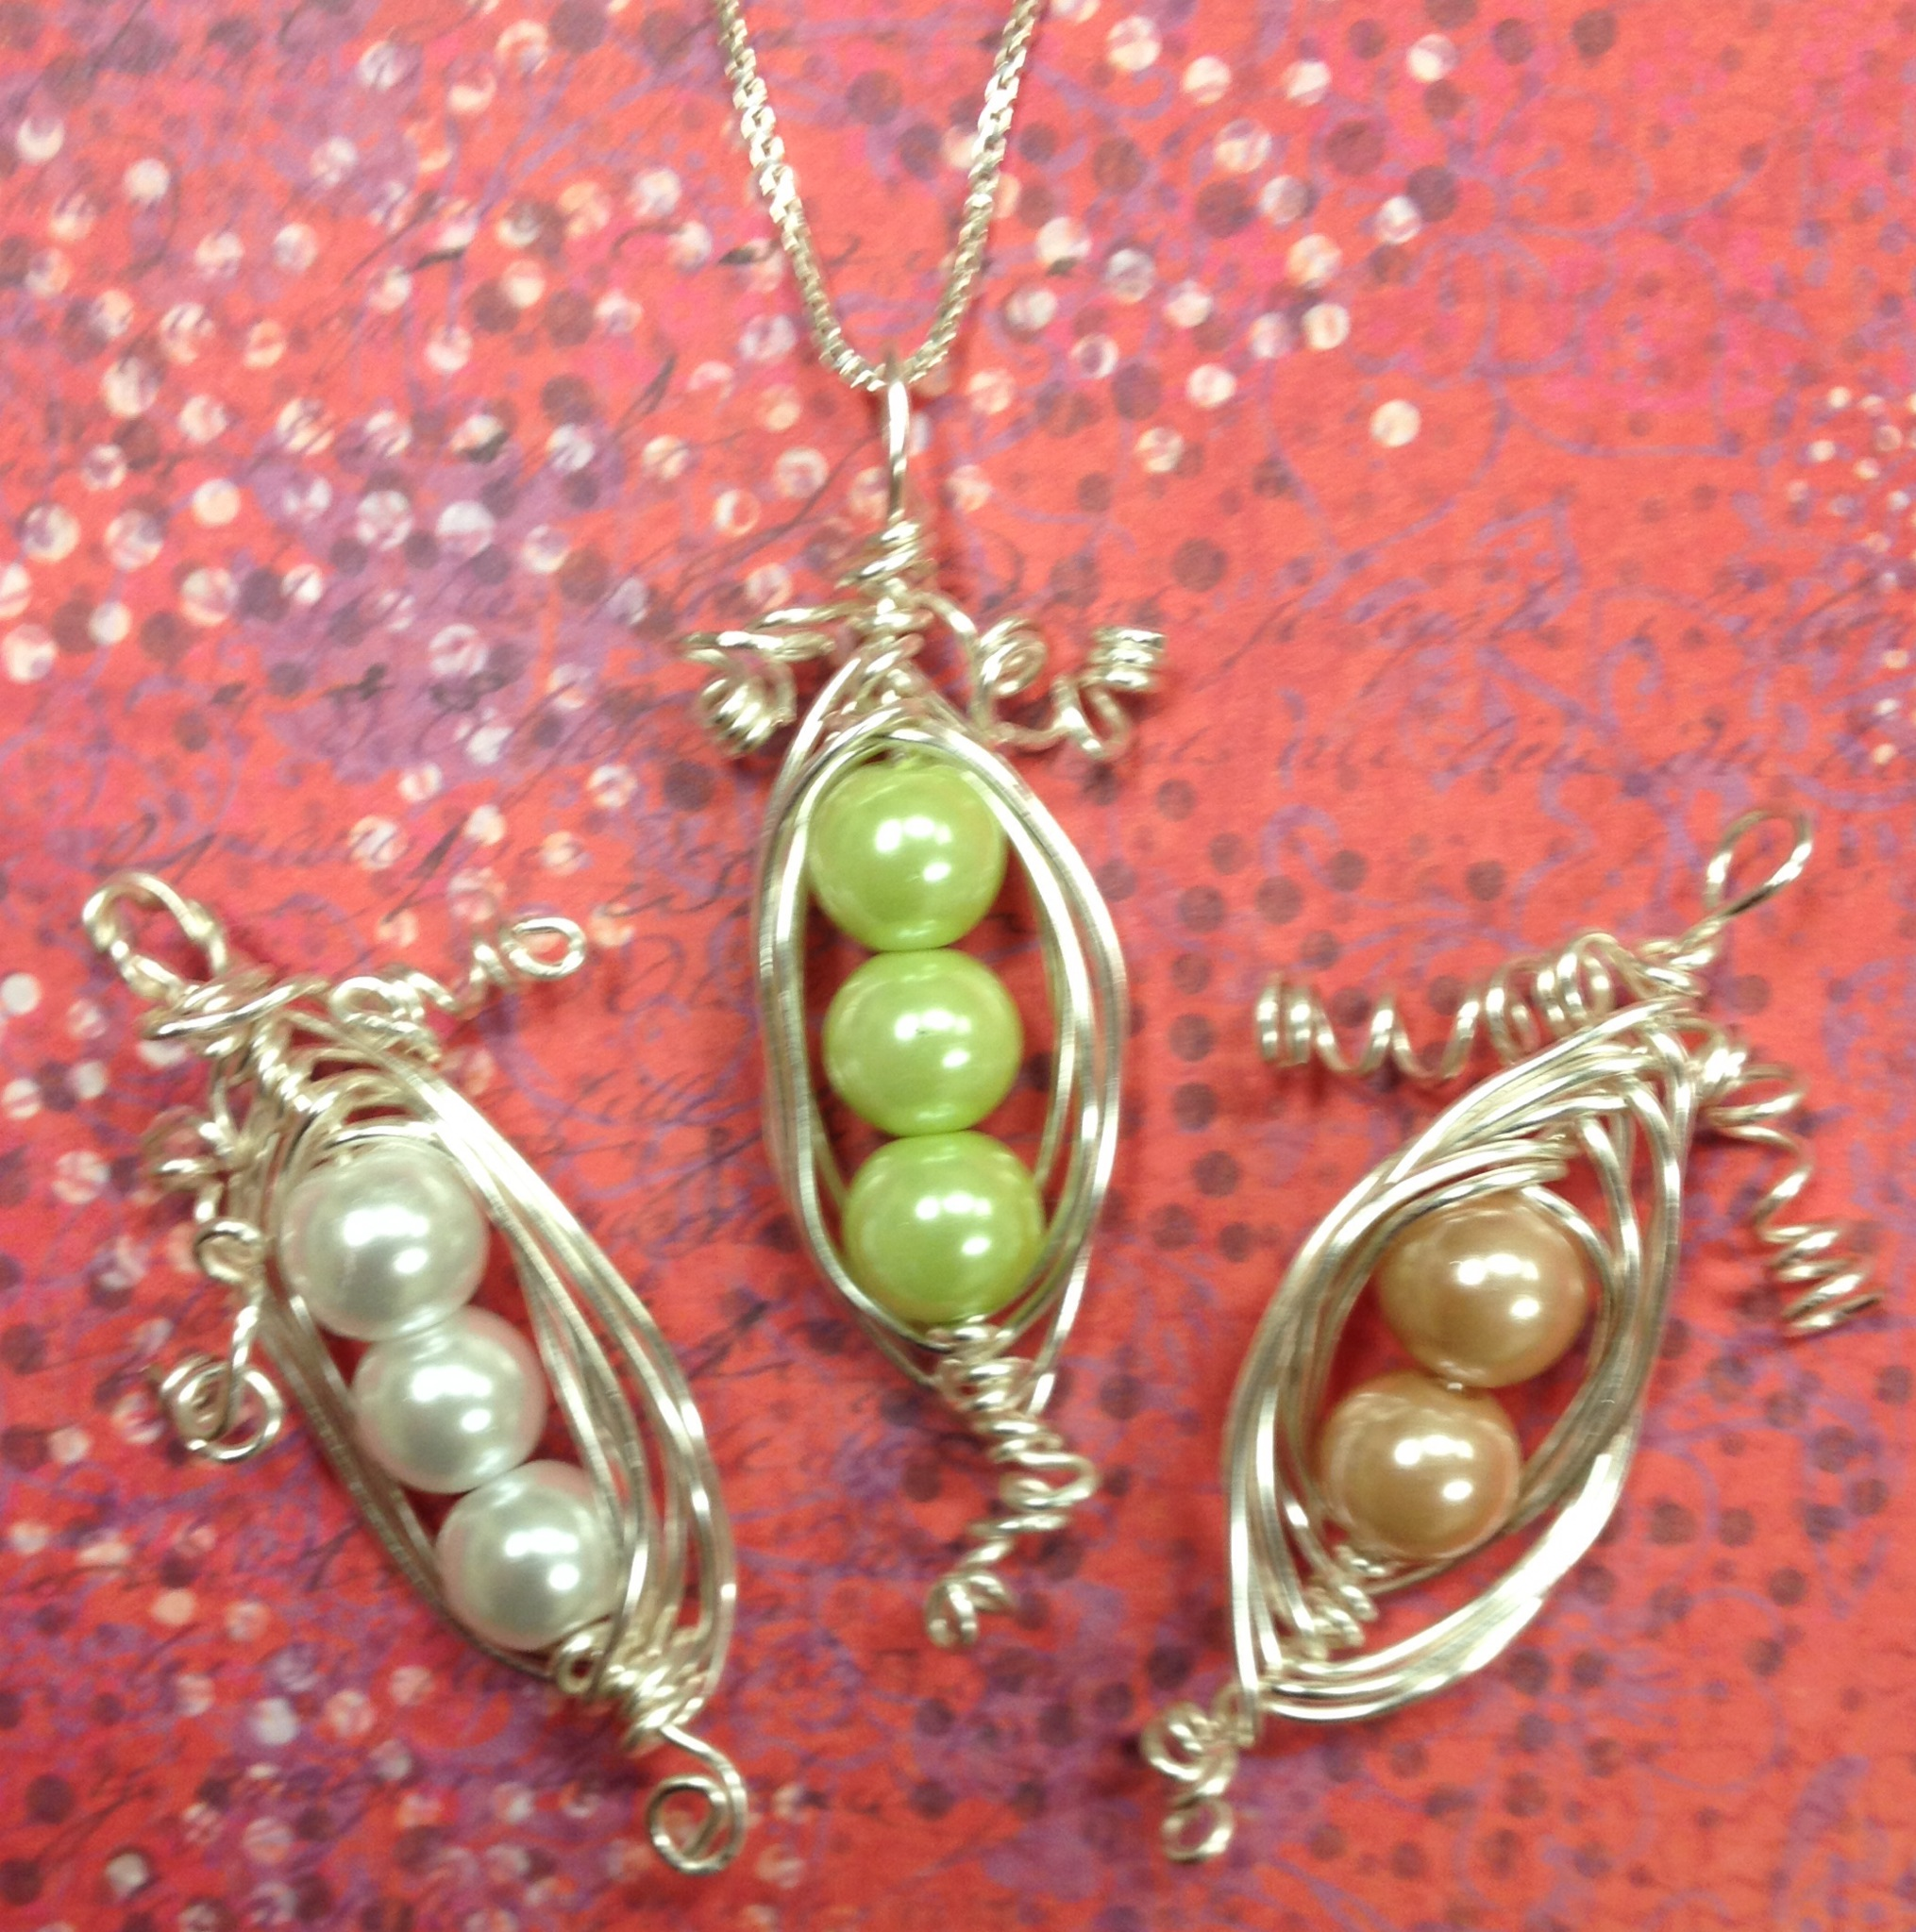 golden necklace tutorial bring a step three loop again in wpid around pea bottom necklaces wire front down the rippy and peas over pod of to